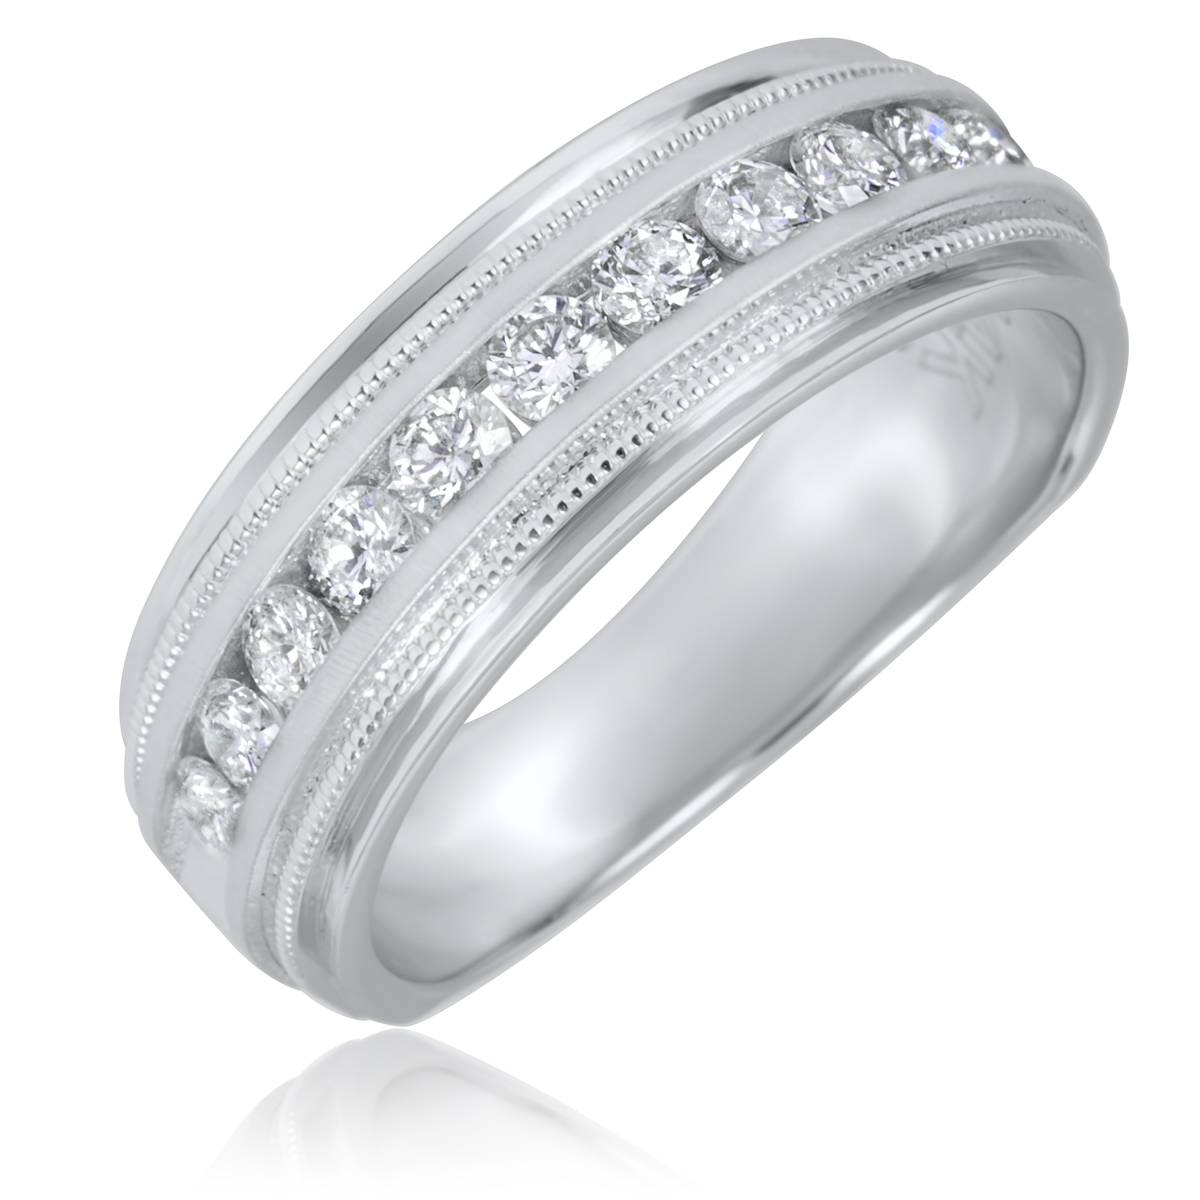 Wedding Rings : Unique Mens Wedding Bands White Gold Tungsten Throughout 2018 Men White Gold Wedding Band (View 13 of 15)